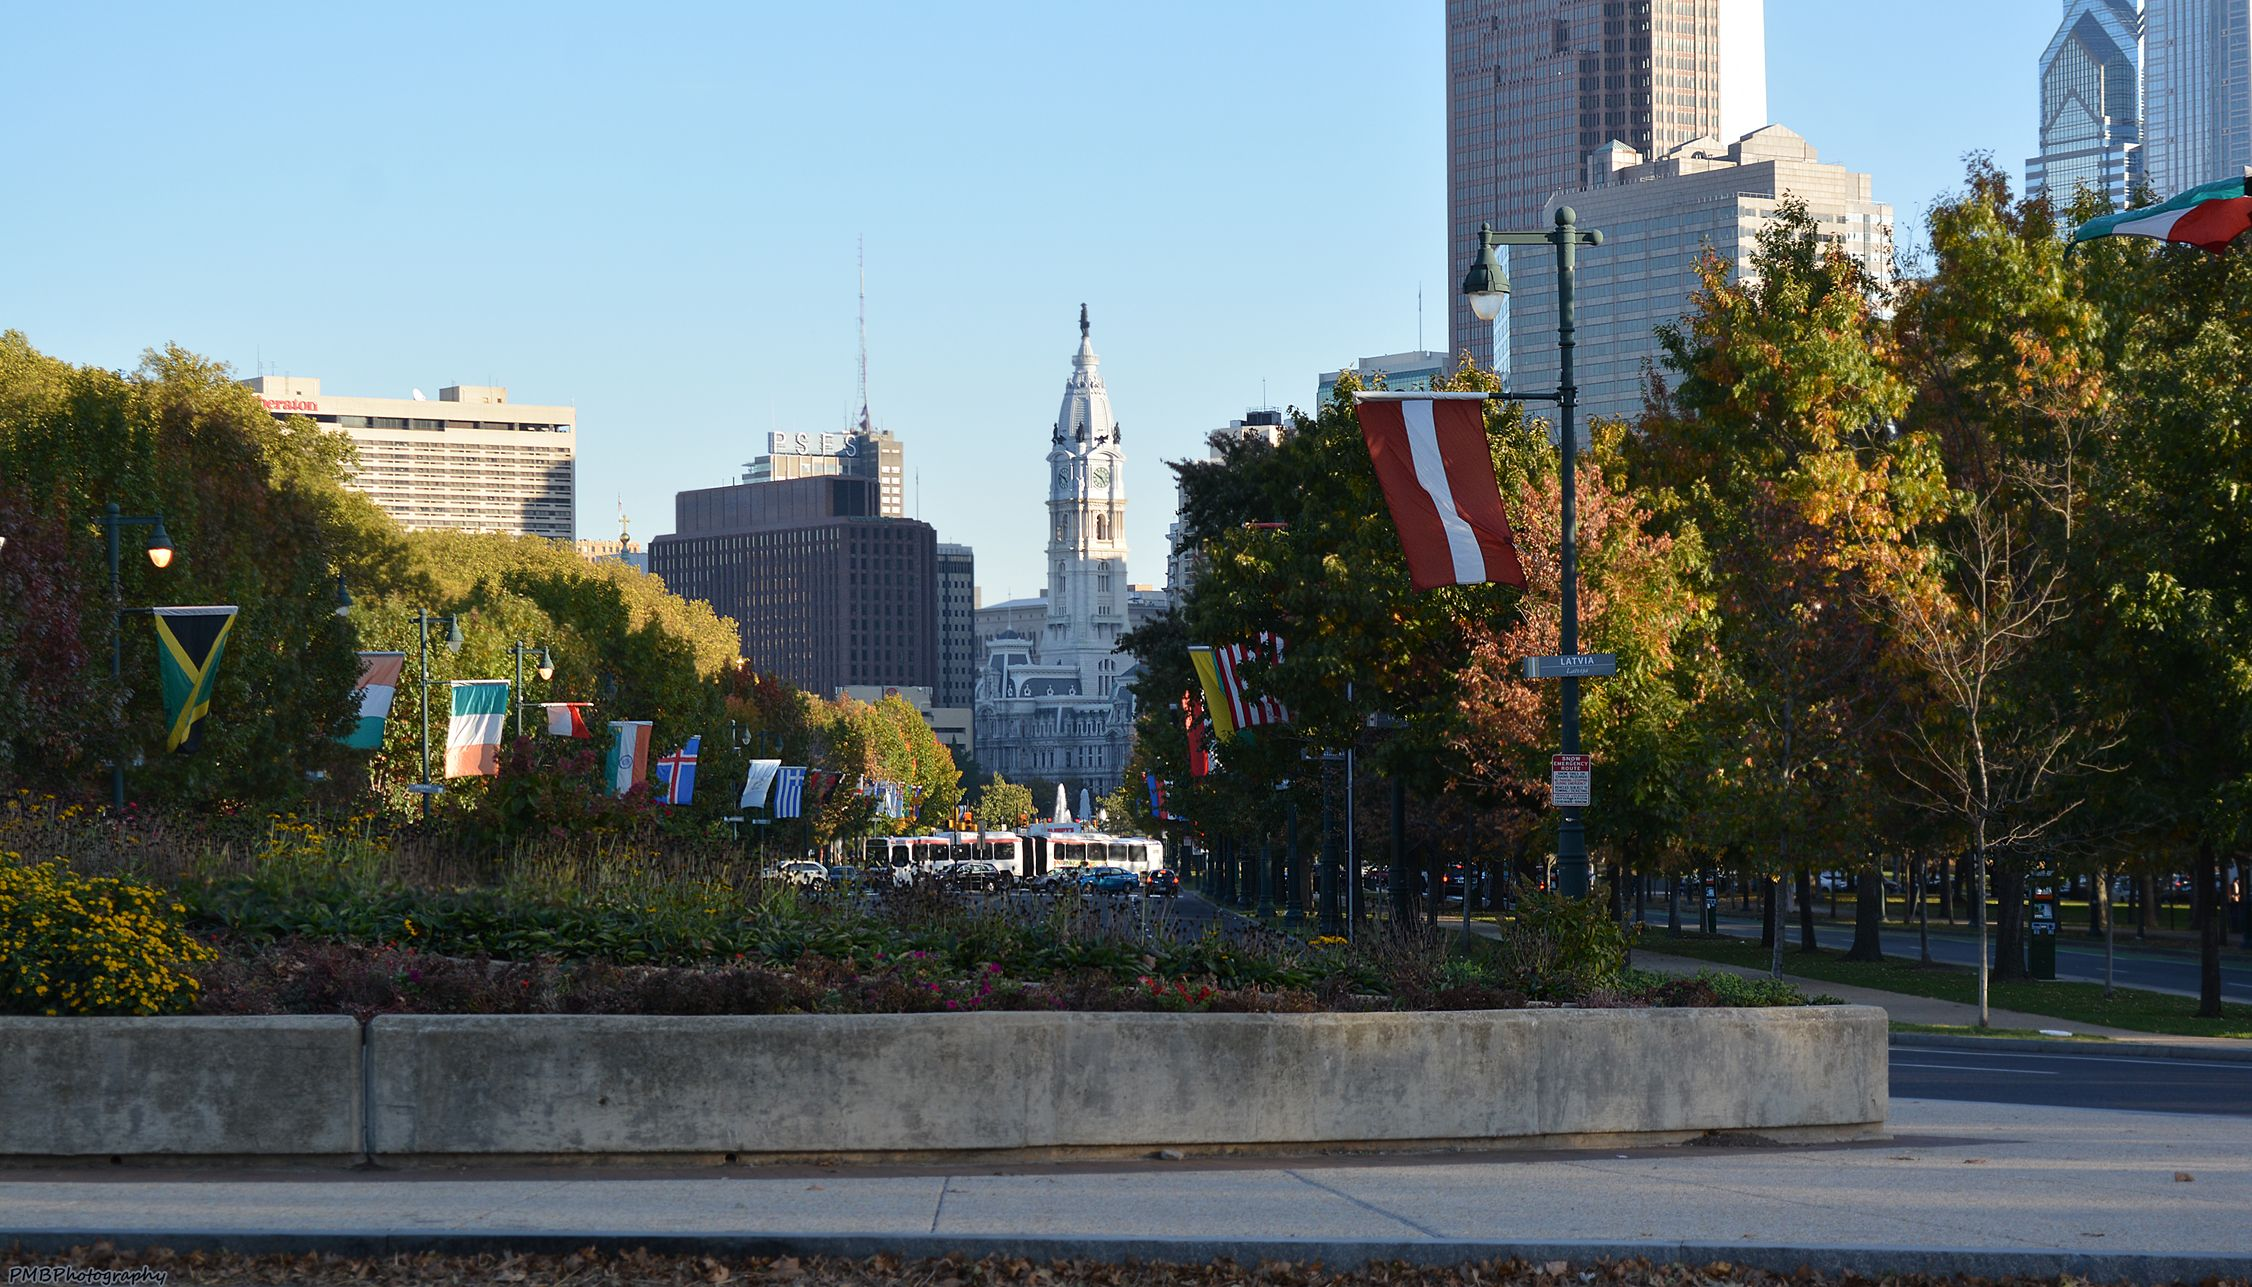 Looking down the Ben Franklin Parkway at City Hall in center background.